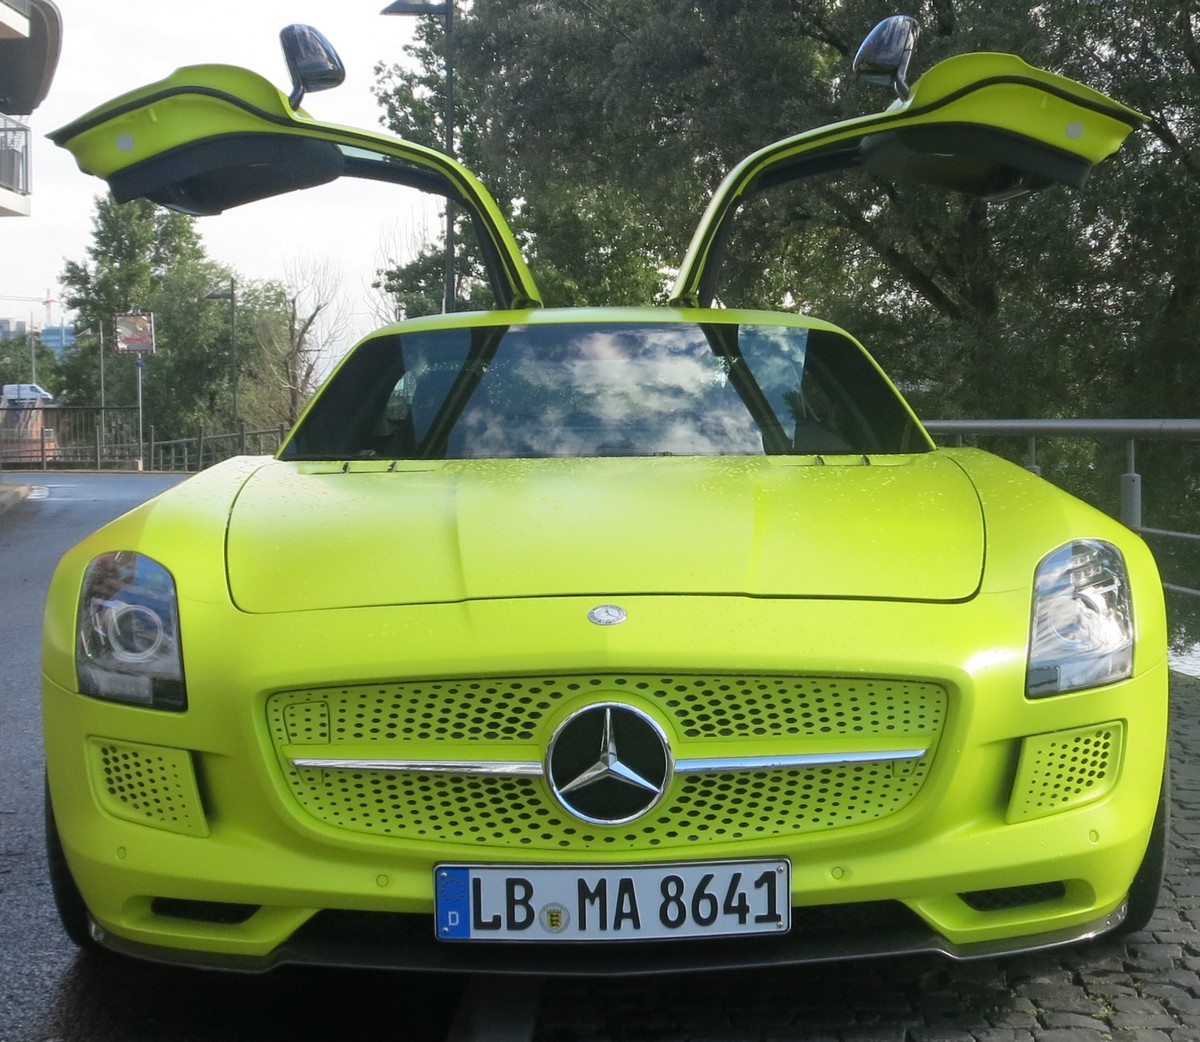 sls-amg-electric-drive-video-fotos-jens-stratmann-front